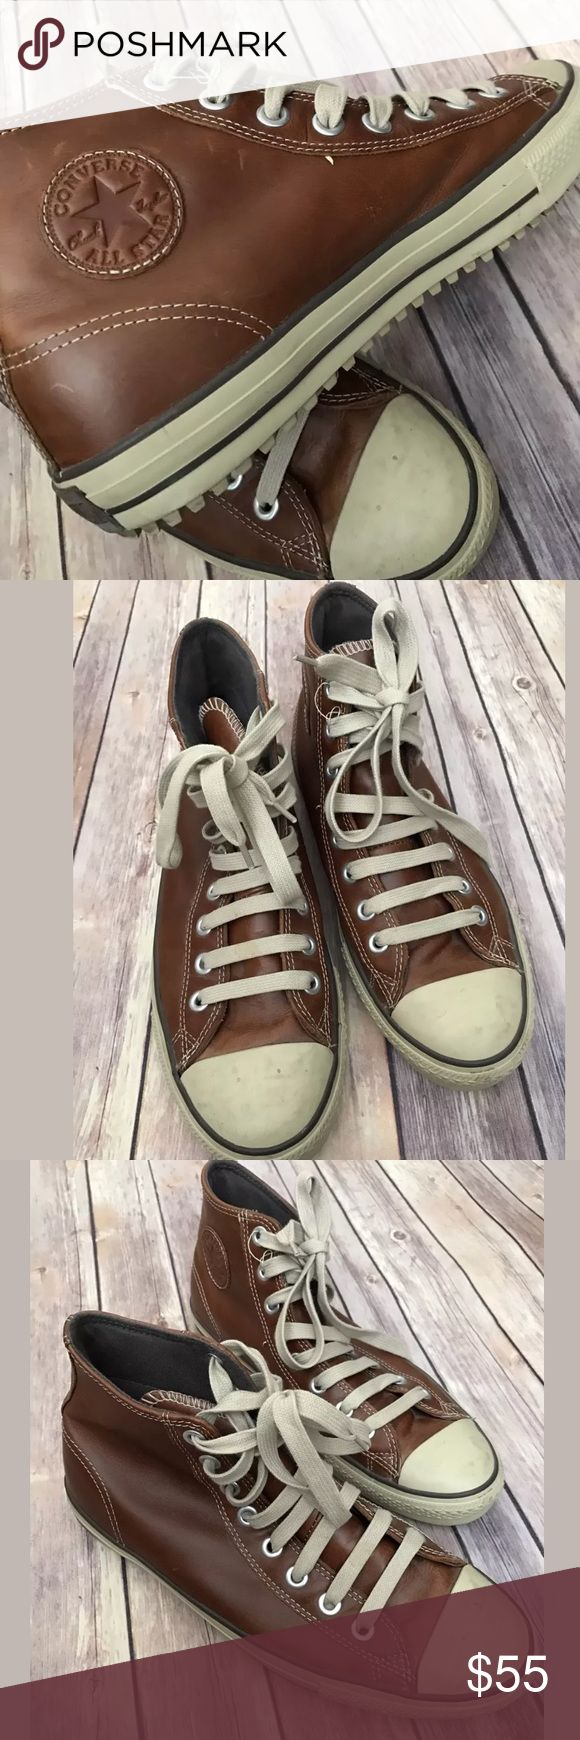 Converse brown leather high tops s M 11.5 W 13.5 Converse Chuck Taylor Leather Shoes Mens Size 11.5  Women's size 13.5  Brown High Top   Great condition, some wear on soles. Shoes will need a minor cleaning.   smoke free pet free home Converse Shoes Sneakers